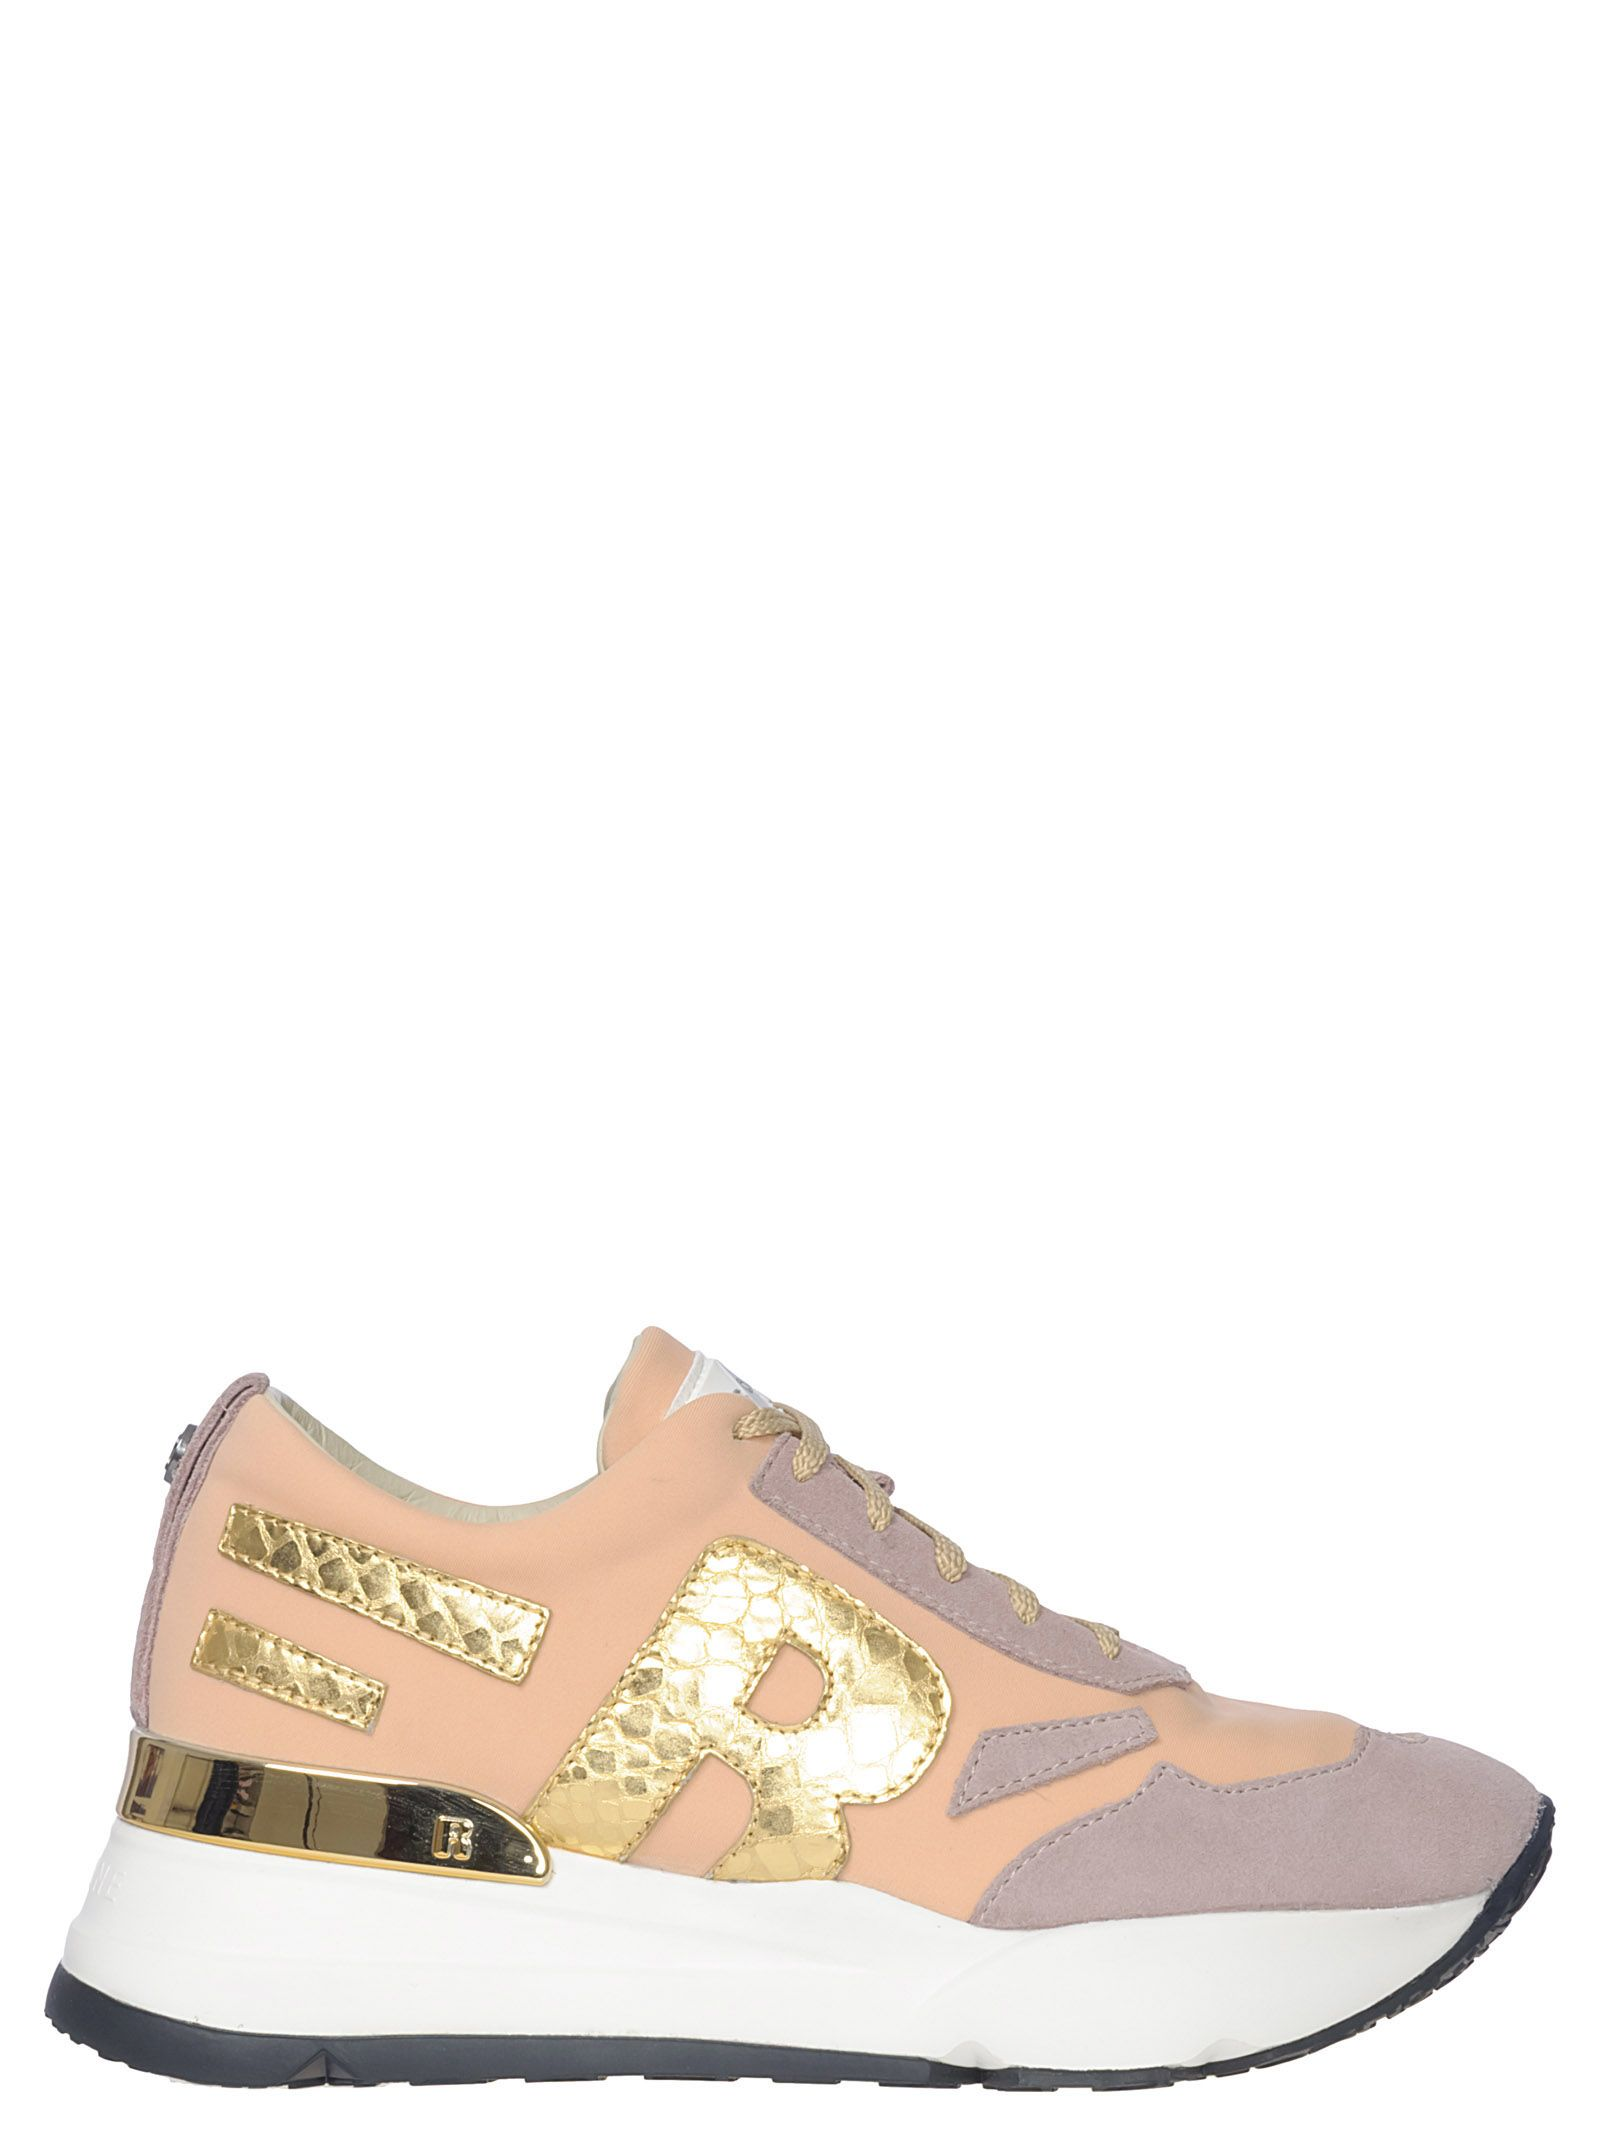 RUCOLINE Rucoline Sneakers Melog in Nude